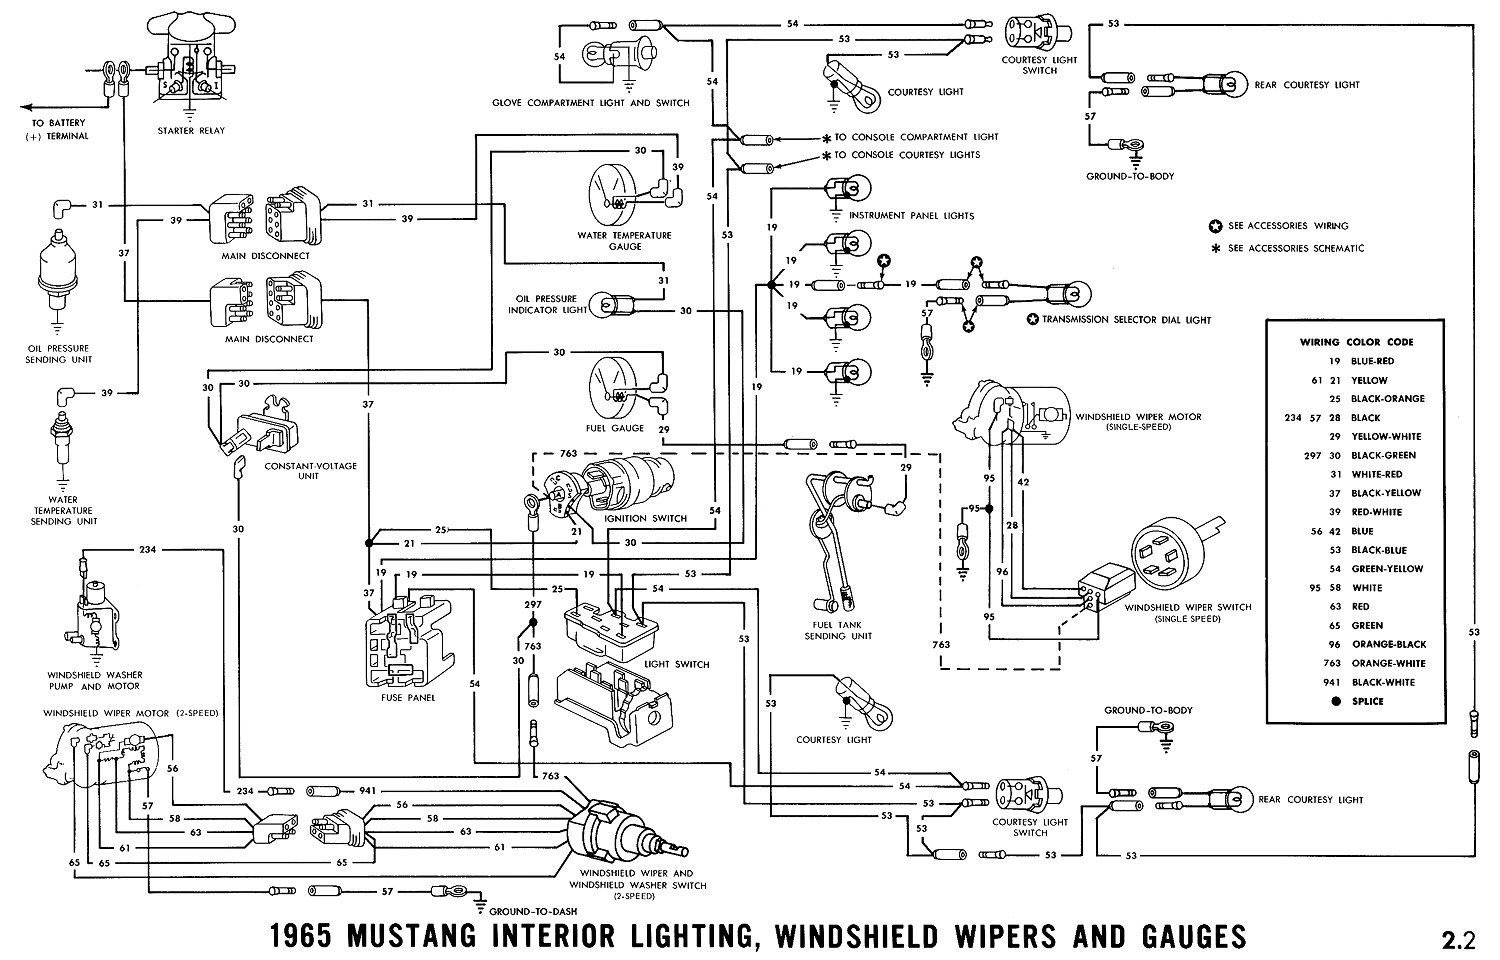 1965g 1965 mustang wiring diagram 1965 lincoln wiring diagram \u2022 wiring 1971 mustang fuse box diagram at mr168.co